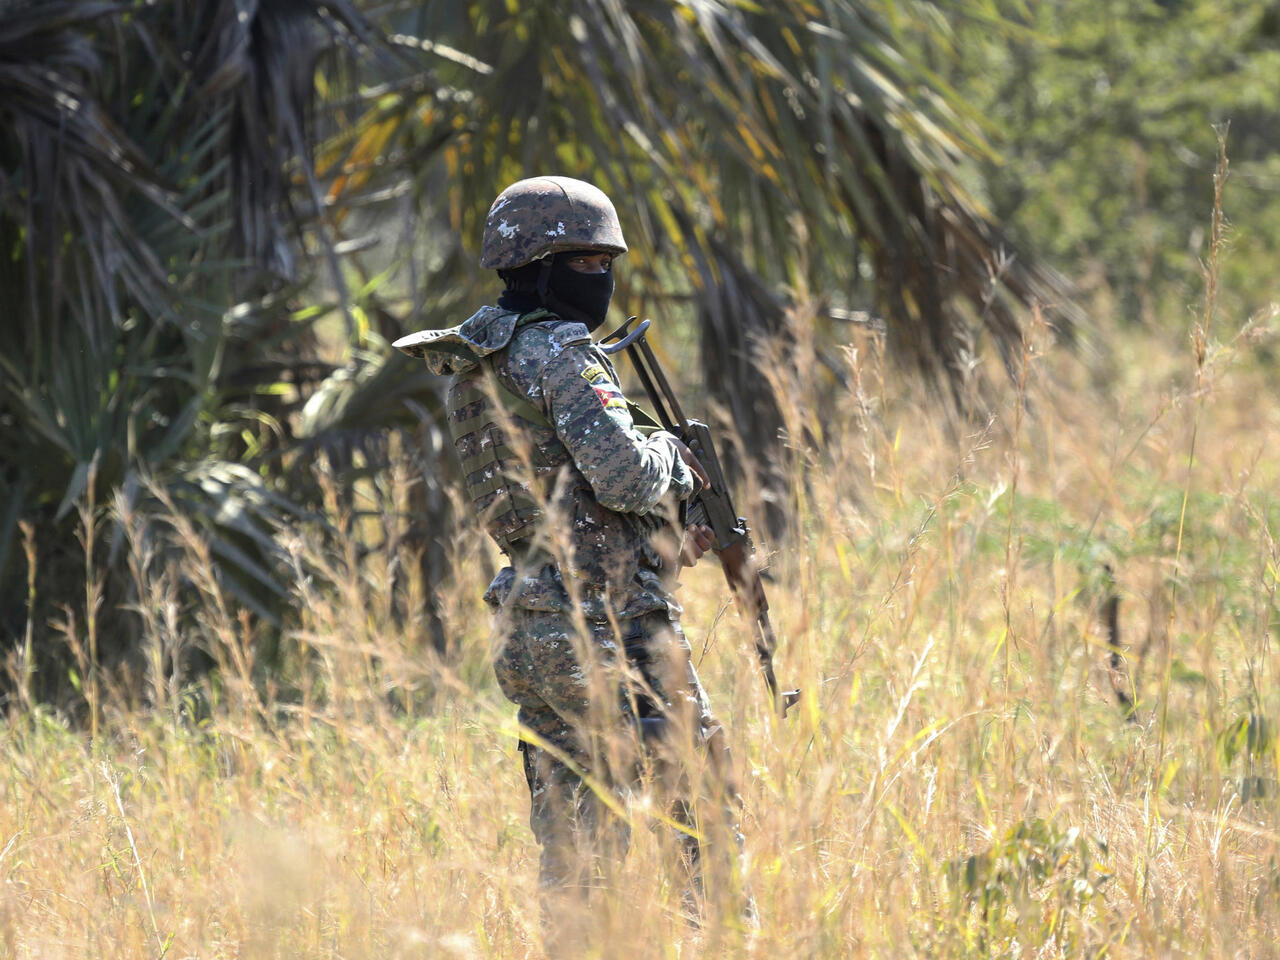 Southern African Nations To Deploy Troops To Fight Mozambique Insurgency